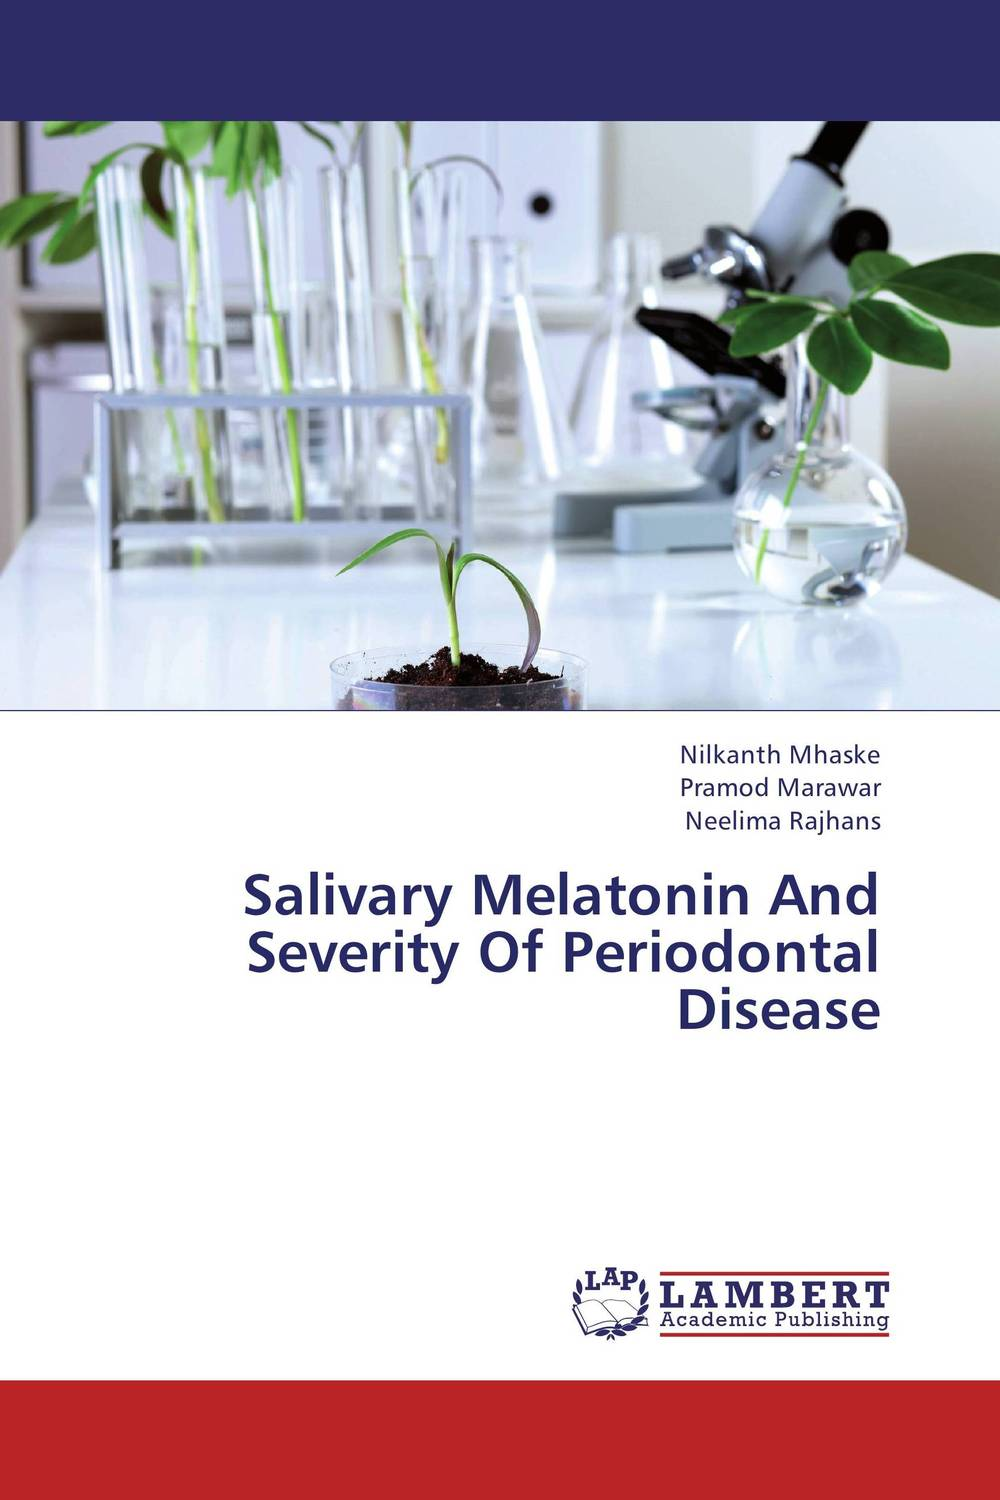 Salivary Melatonin And Severity Of Periodontal Disease new arrival classification of periodontal diseases teeth model dental patient communication model process of periodontal disease